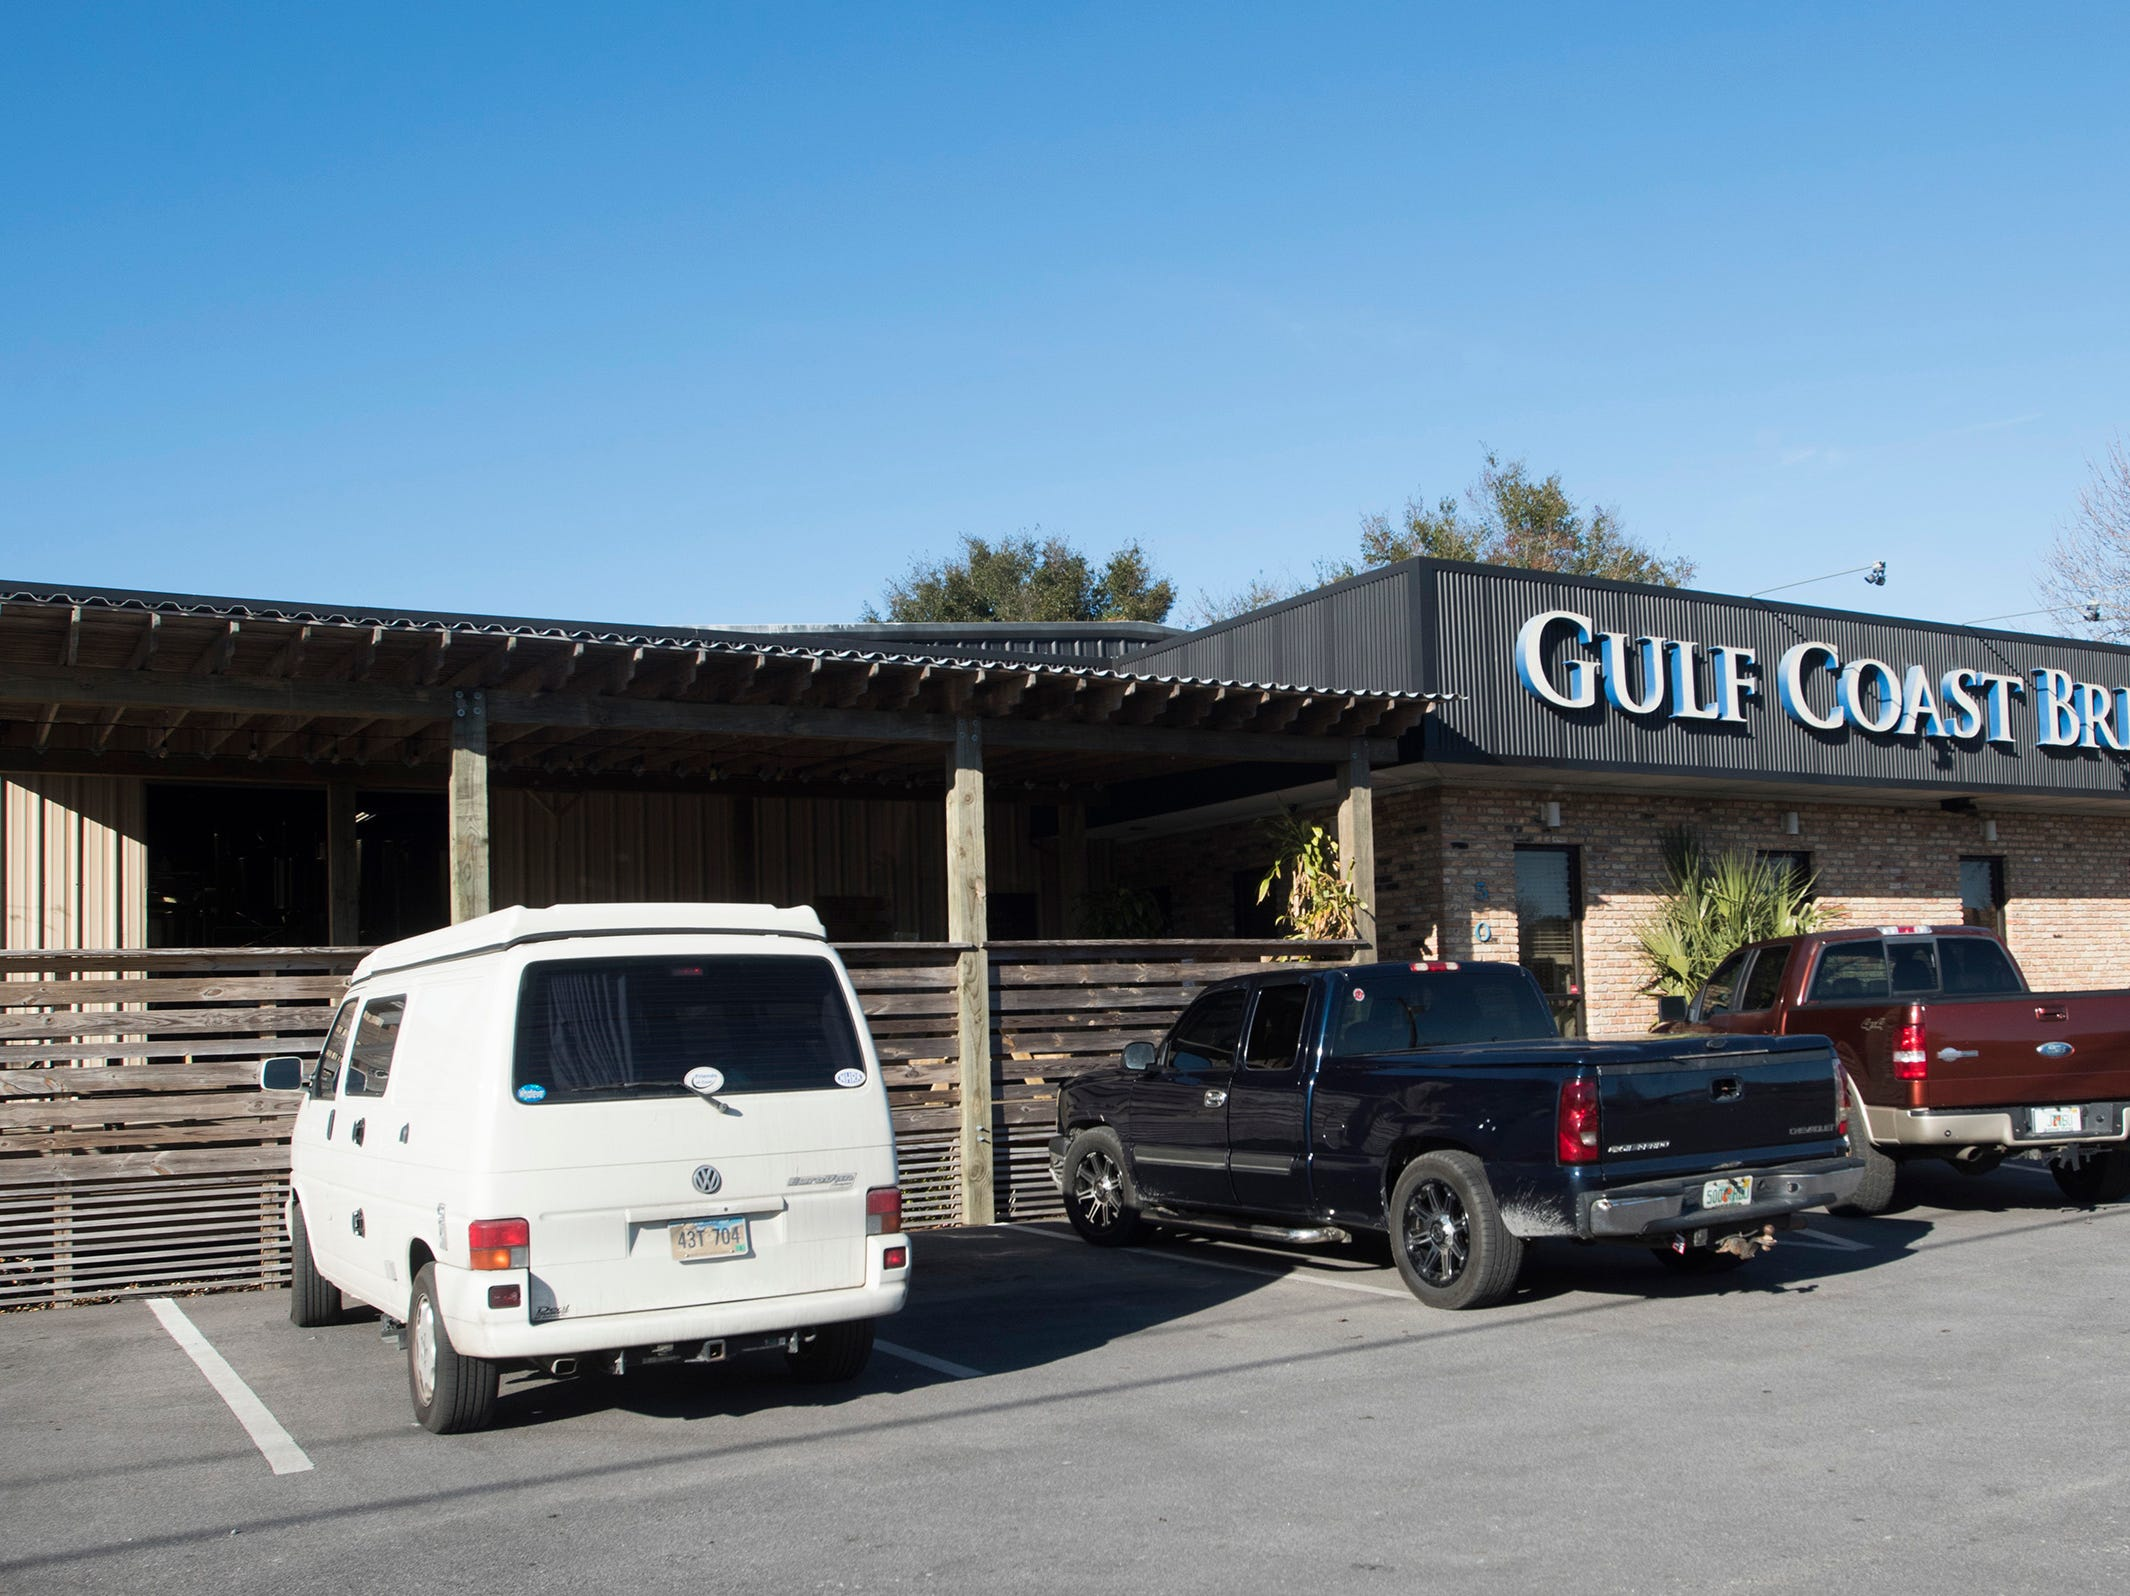 The Gulf Coast Brewery located on Heinberg Street will soon celebrate its third anniversary.